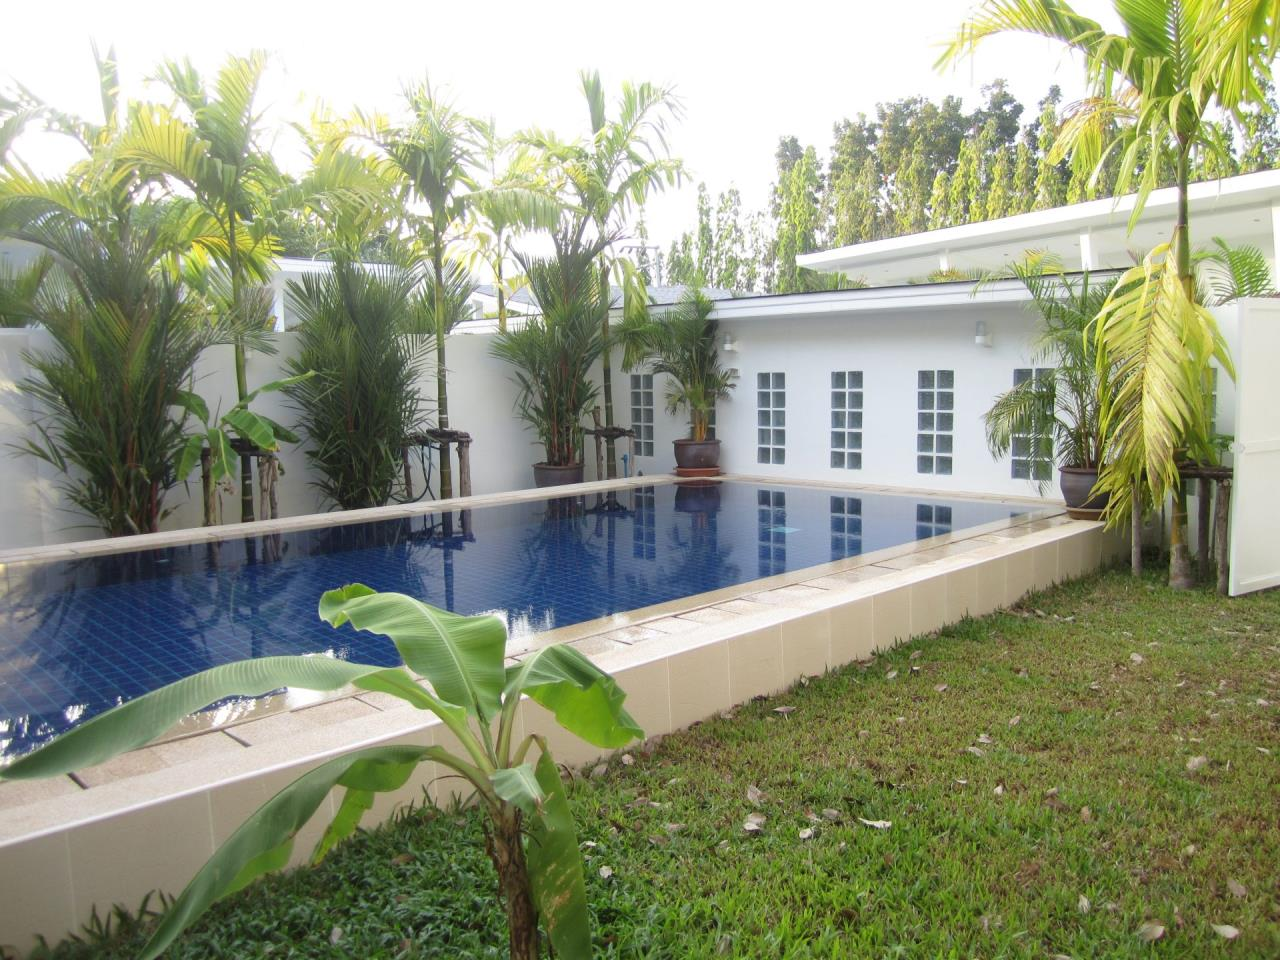 REAL Phuket  Agency's Delta House - Private Estate with 5 Villas on 4 Rai on Phuket's East Coast 62